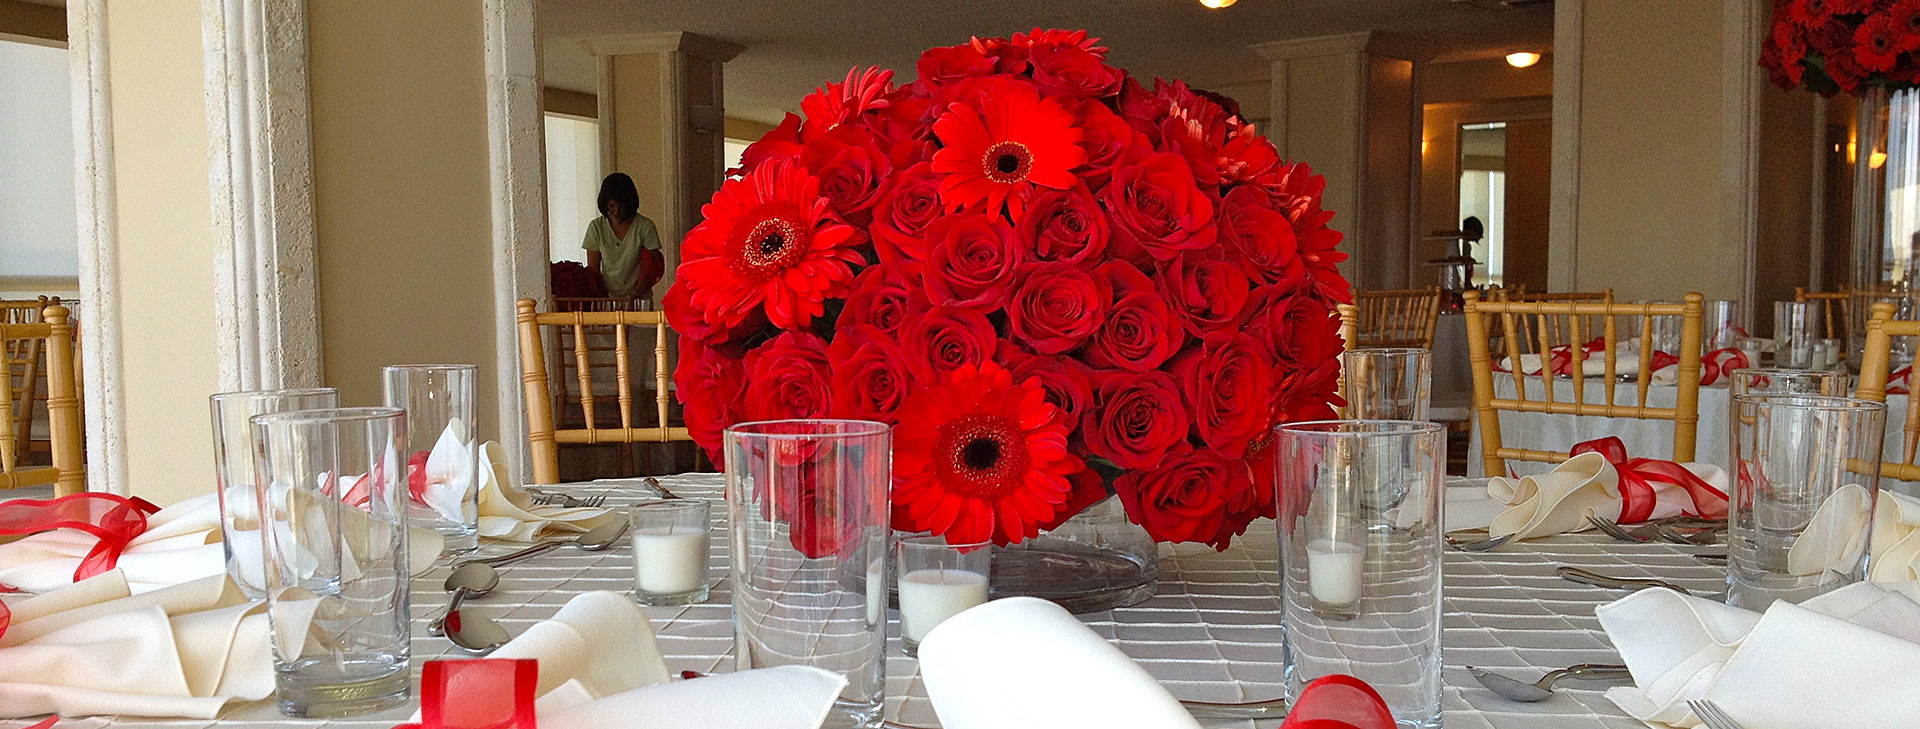 Floral arrangements for social, corporate events and weddings